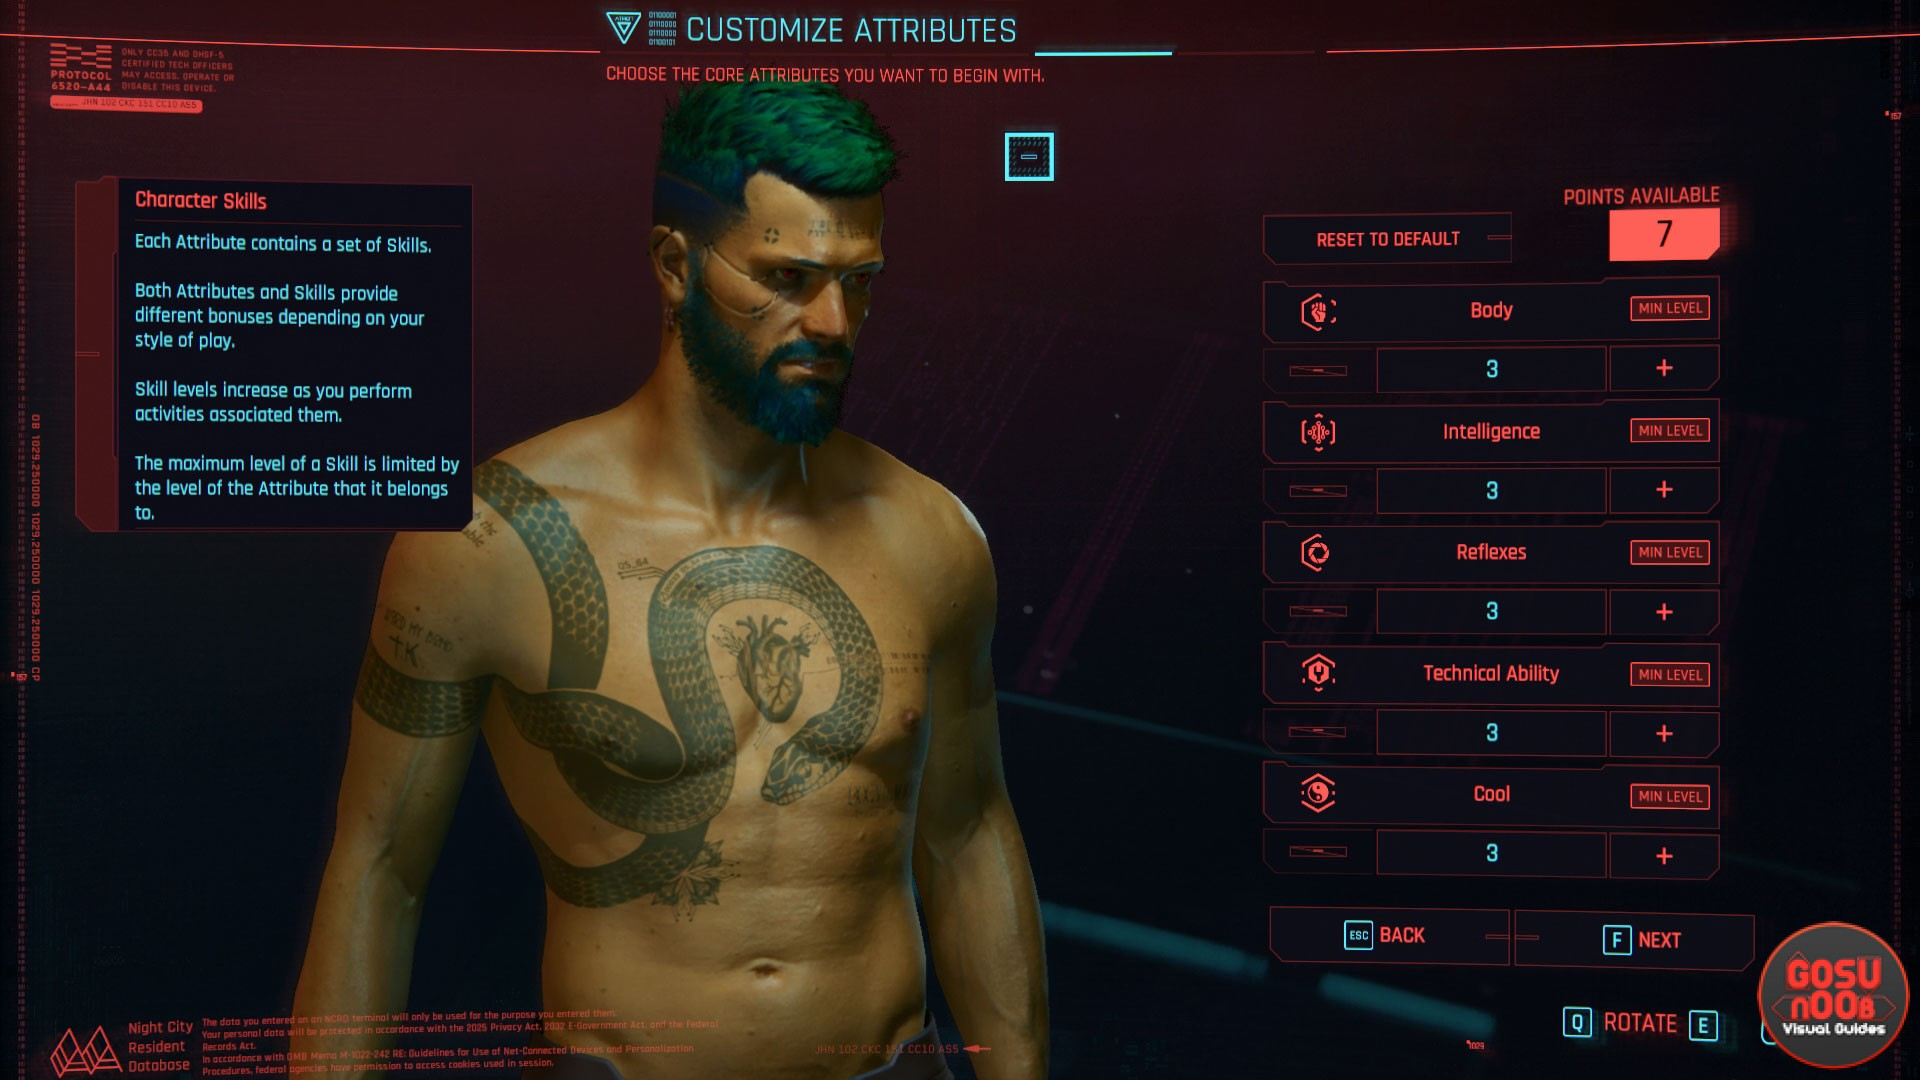 Best stats and abilities in Cyberpunk 2077